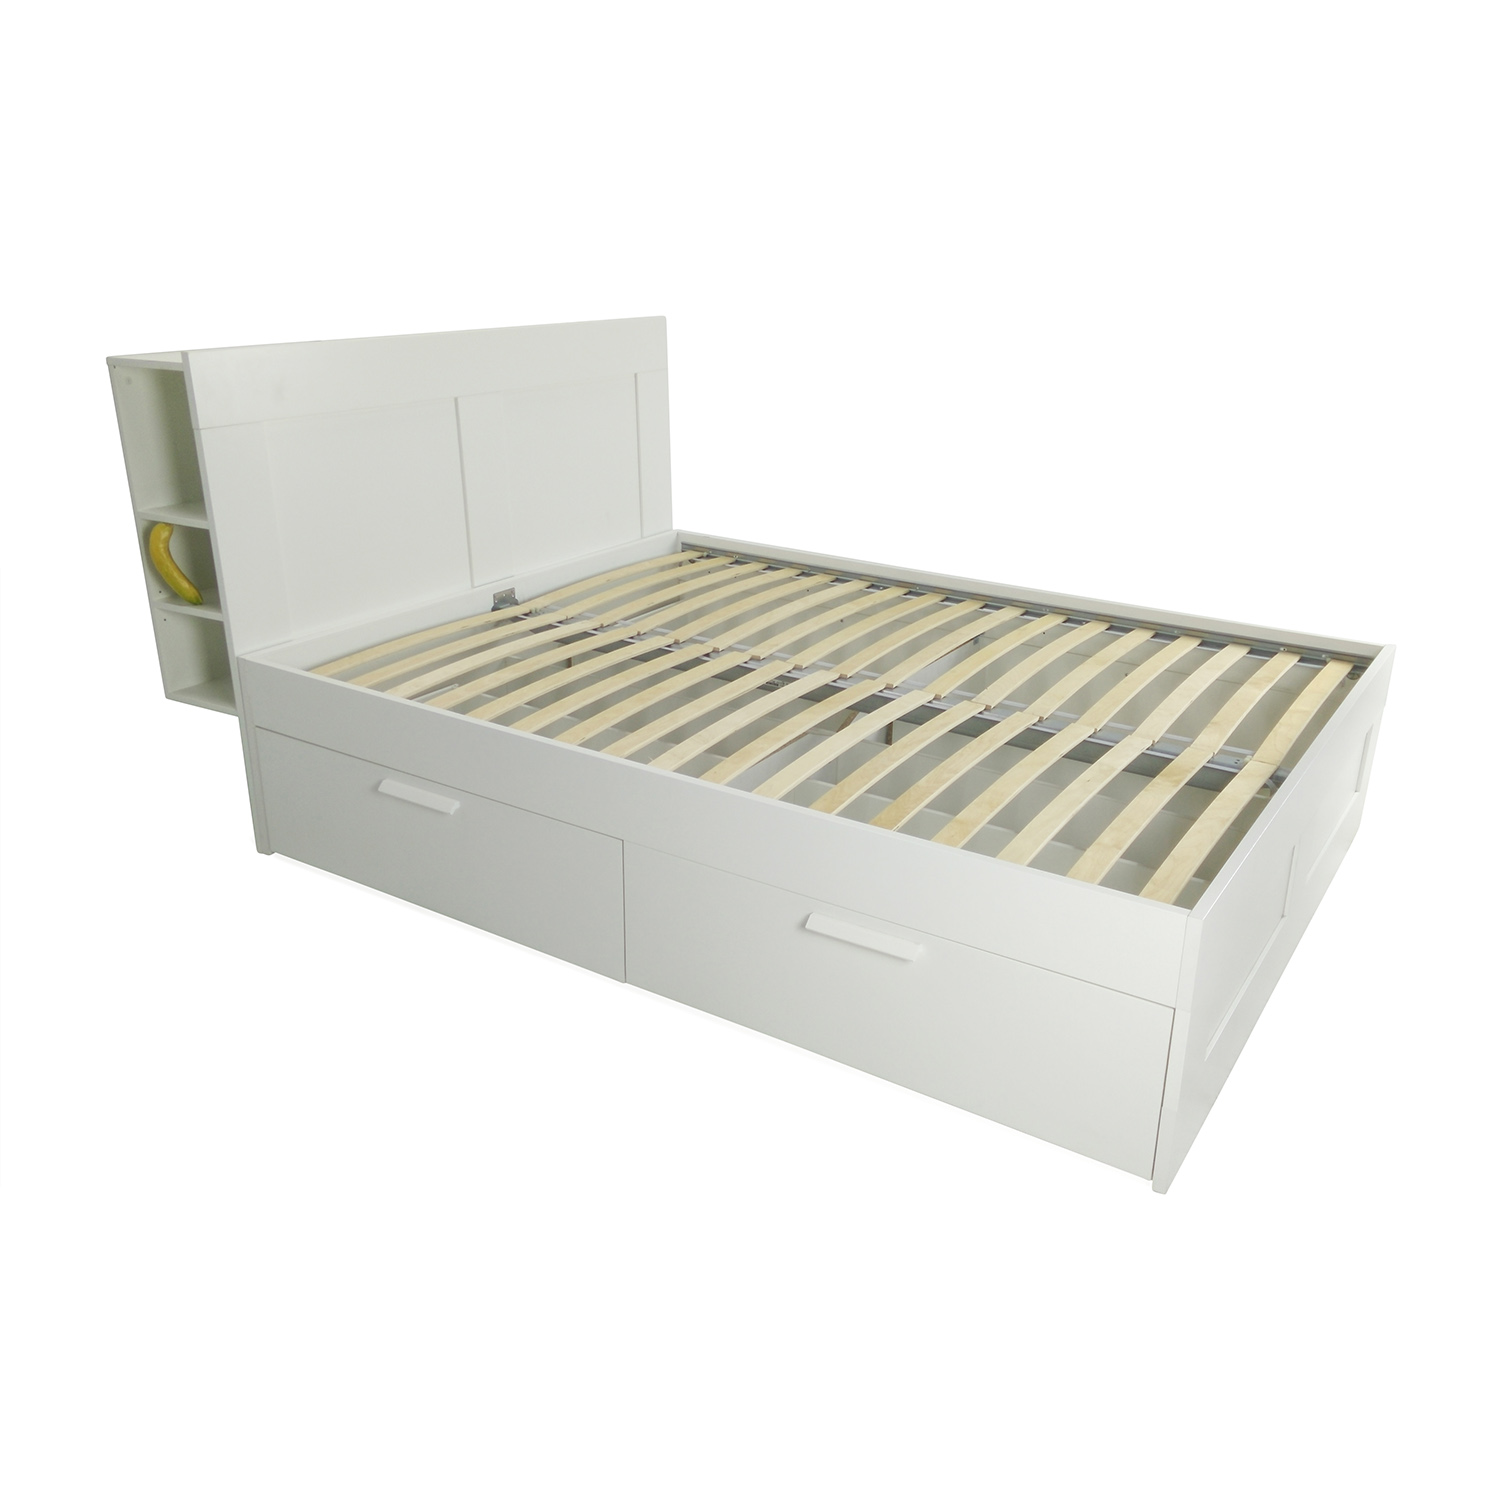 57 off ikea ikea queen size bed frame beds